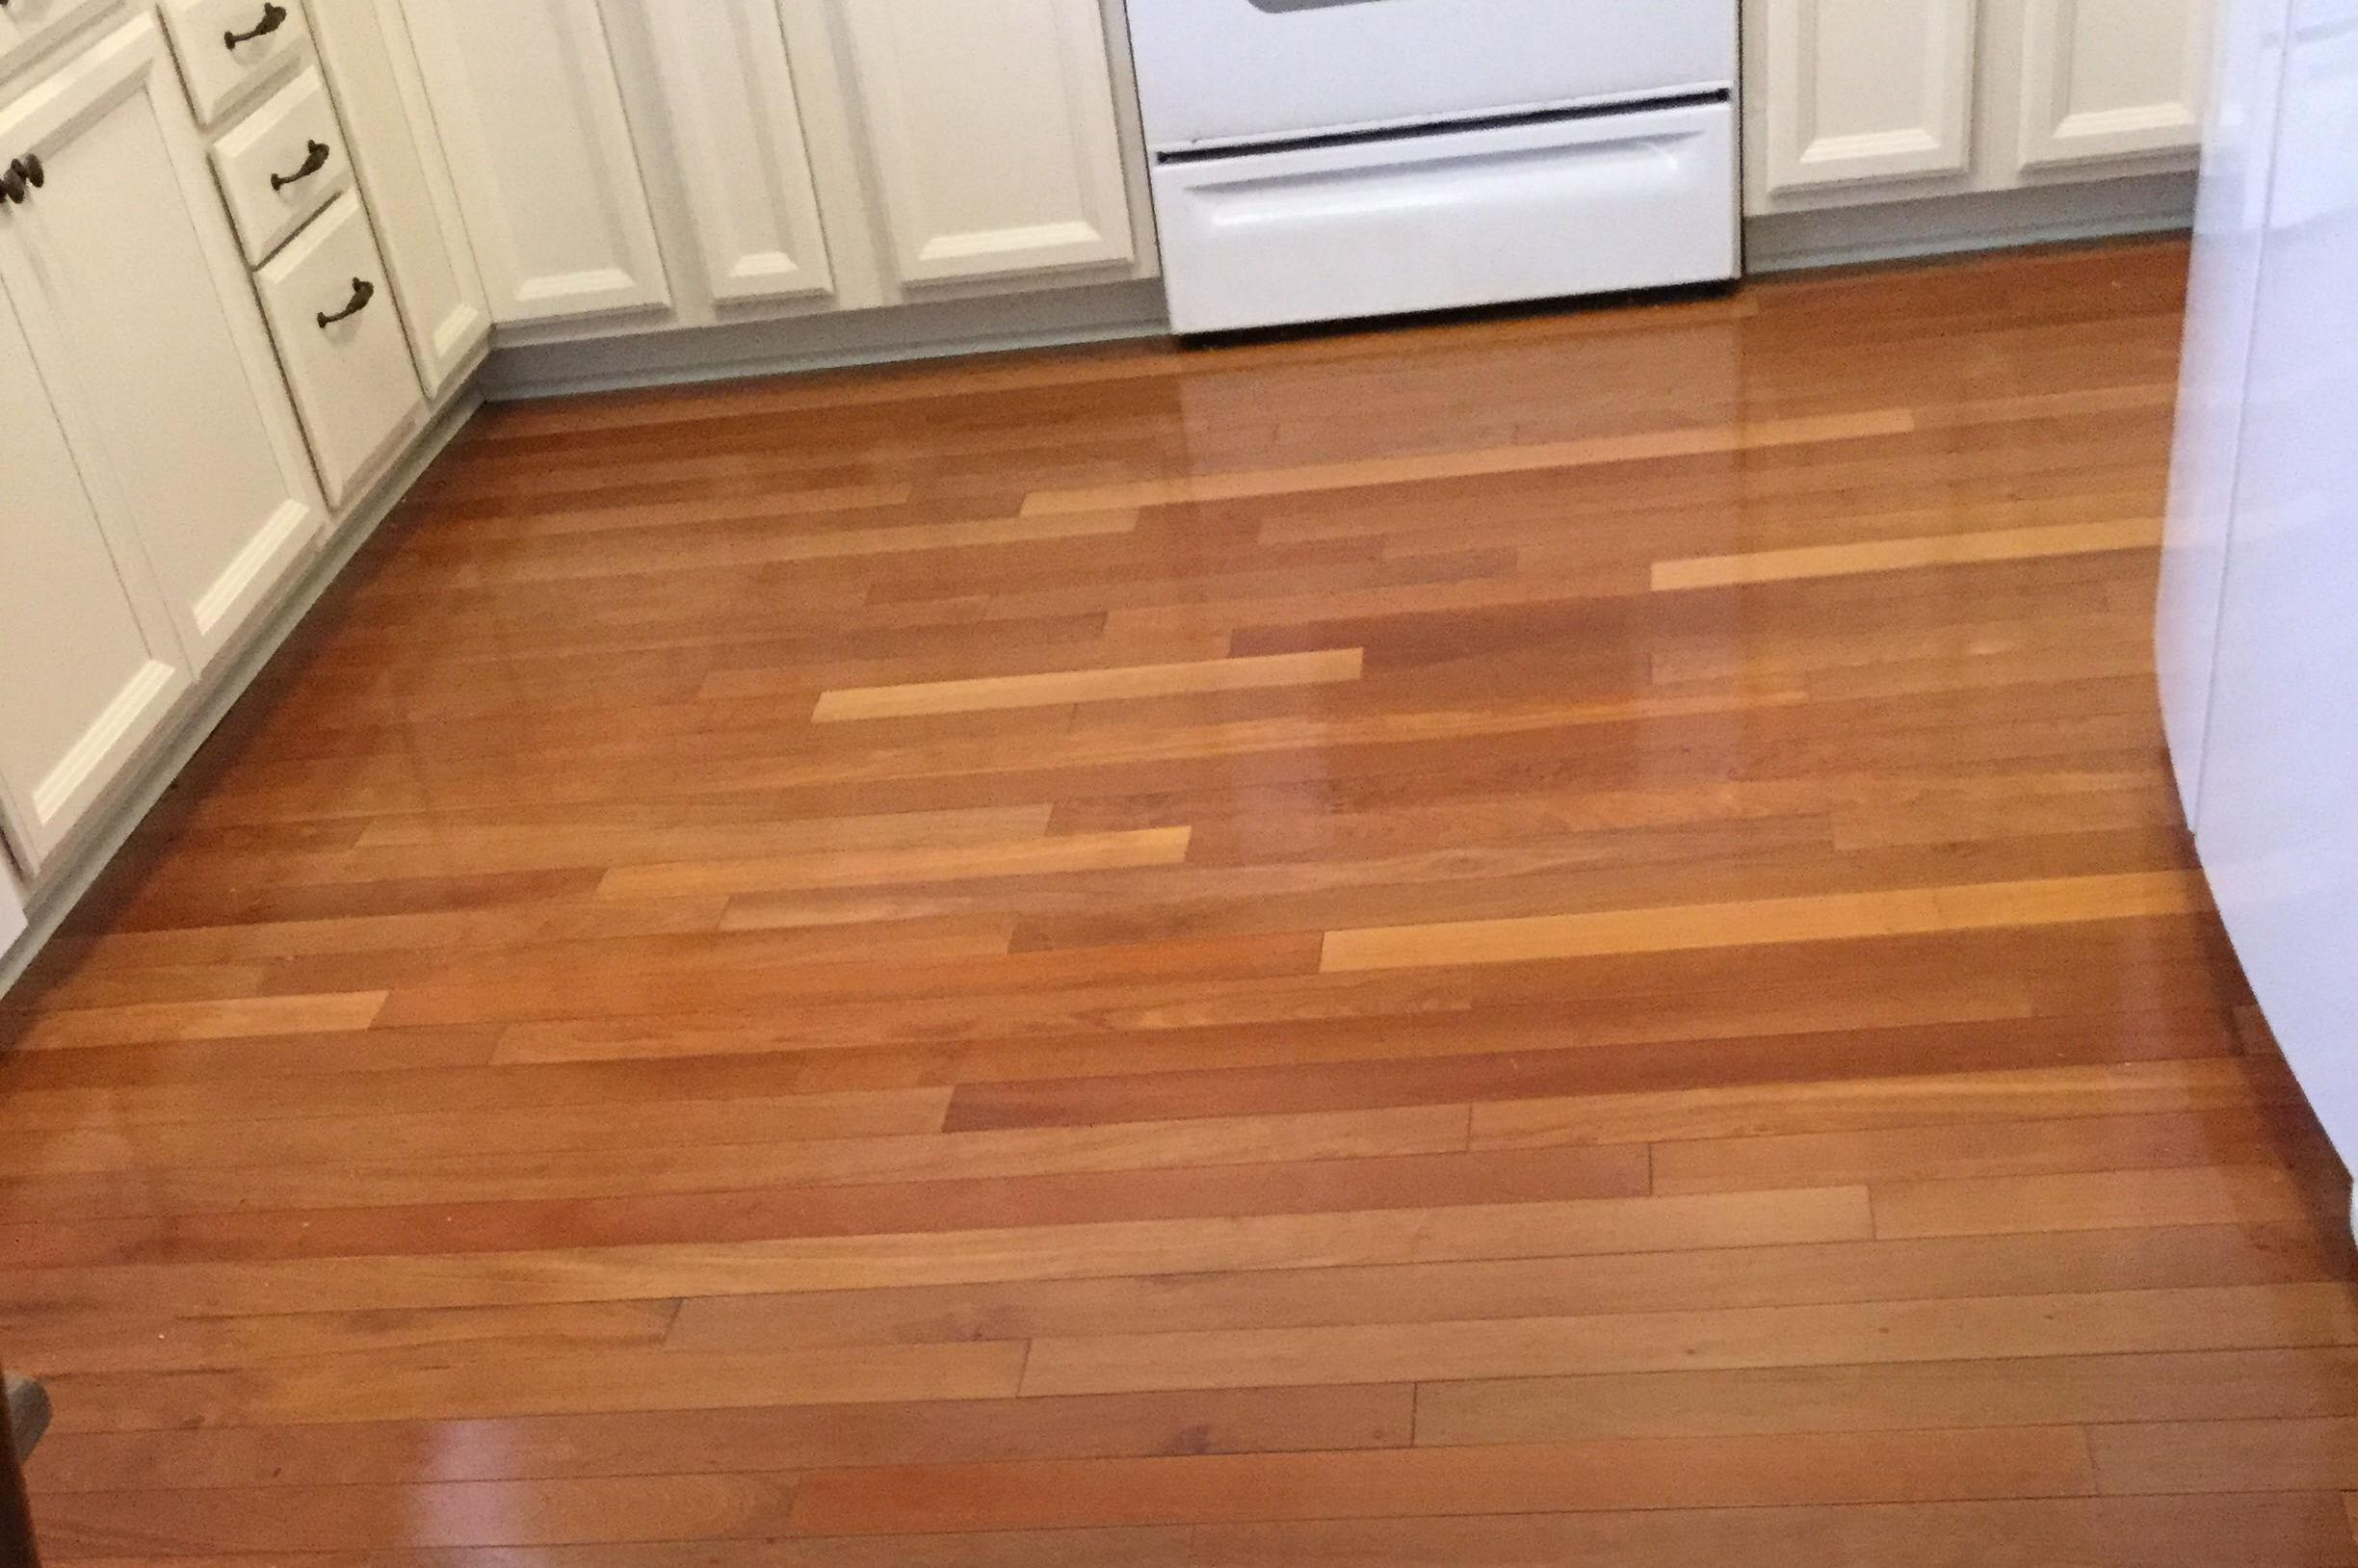 A Leaking Dishwasher Can Damage Hardwood Floor Rather Than Replace The Whole